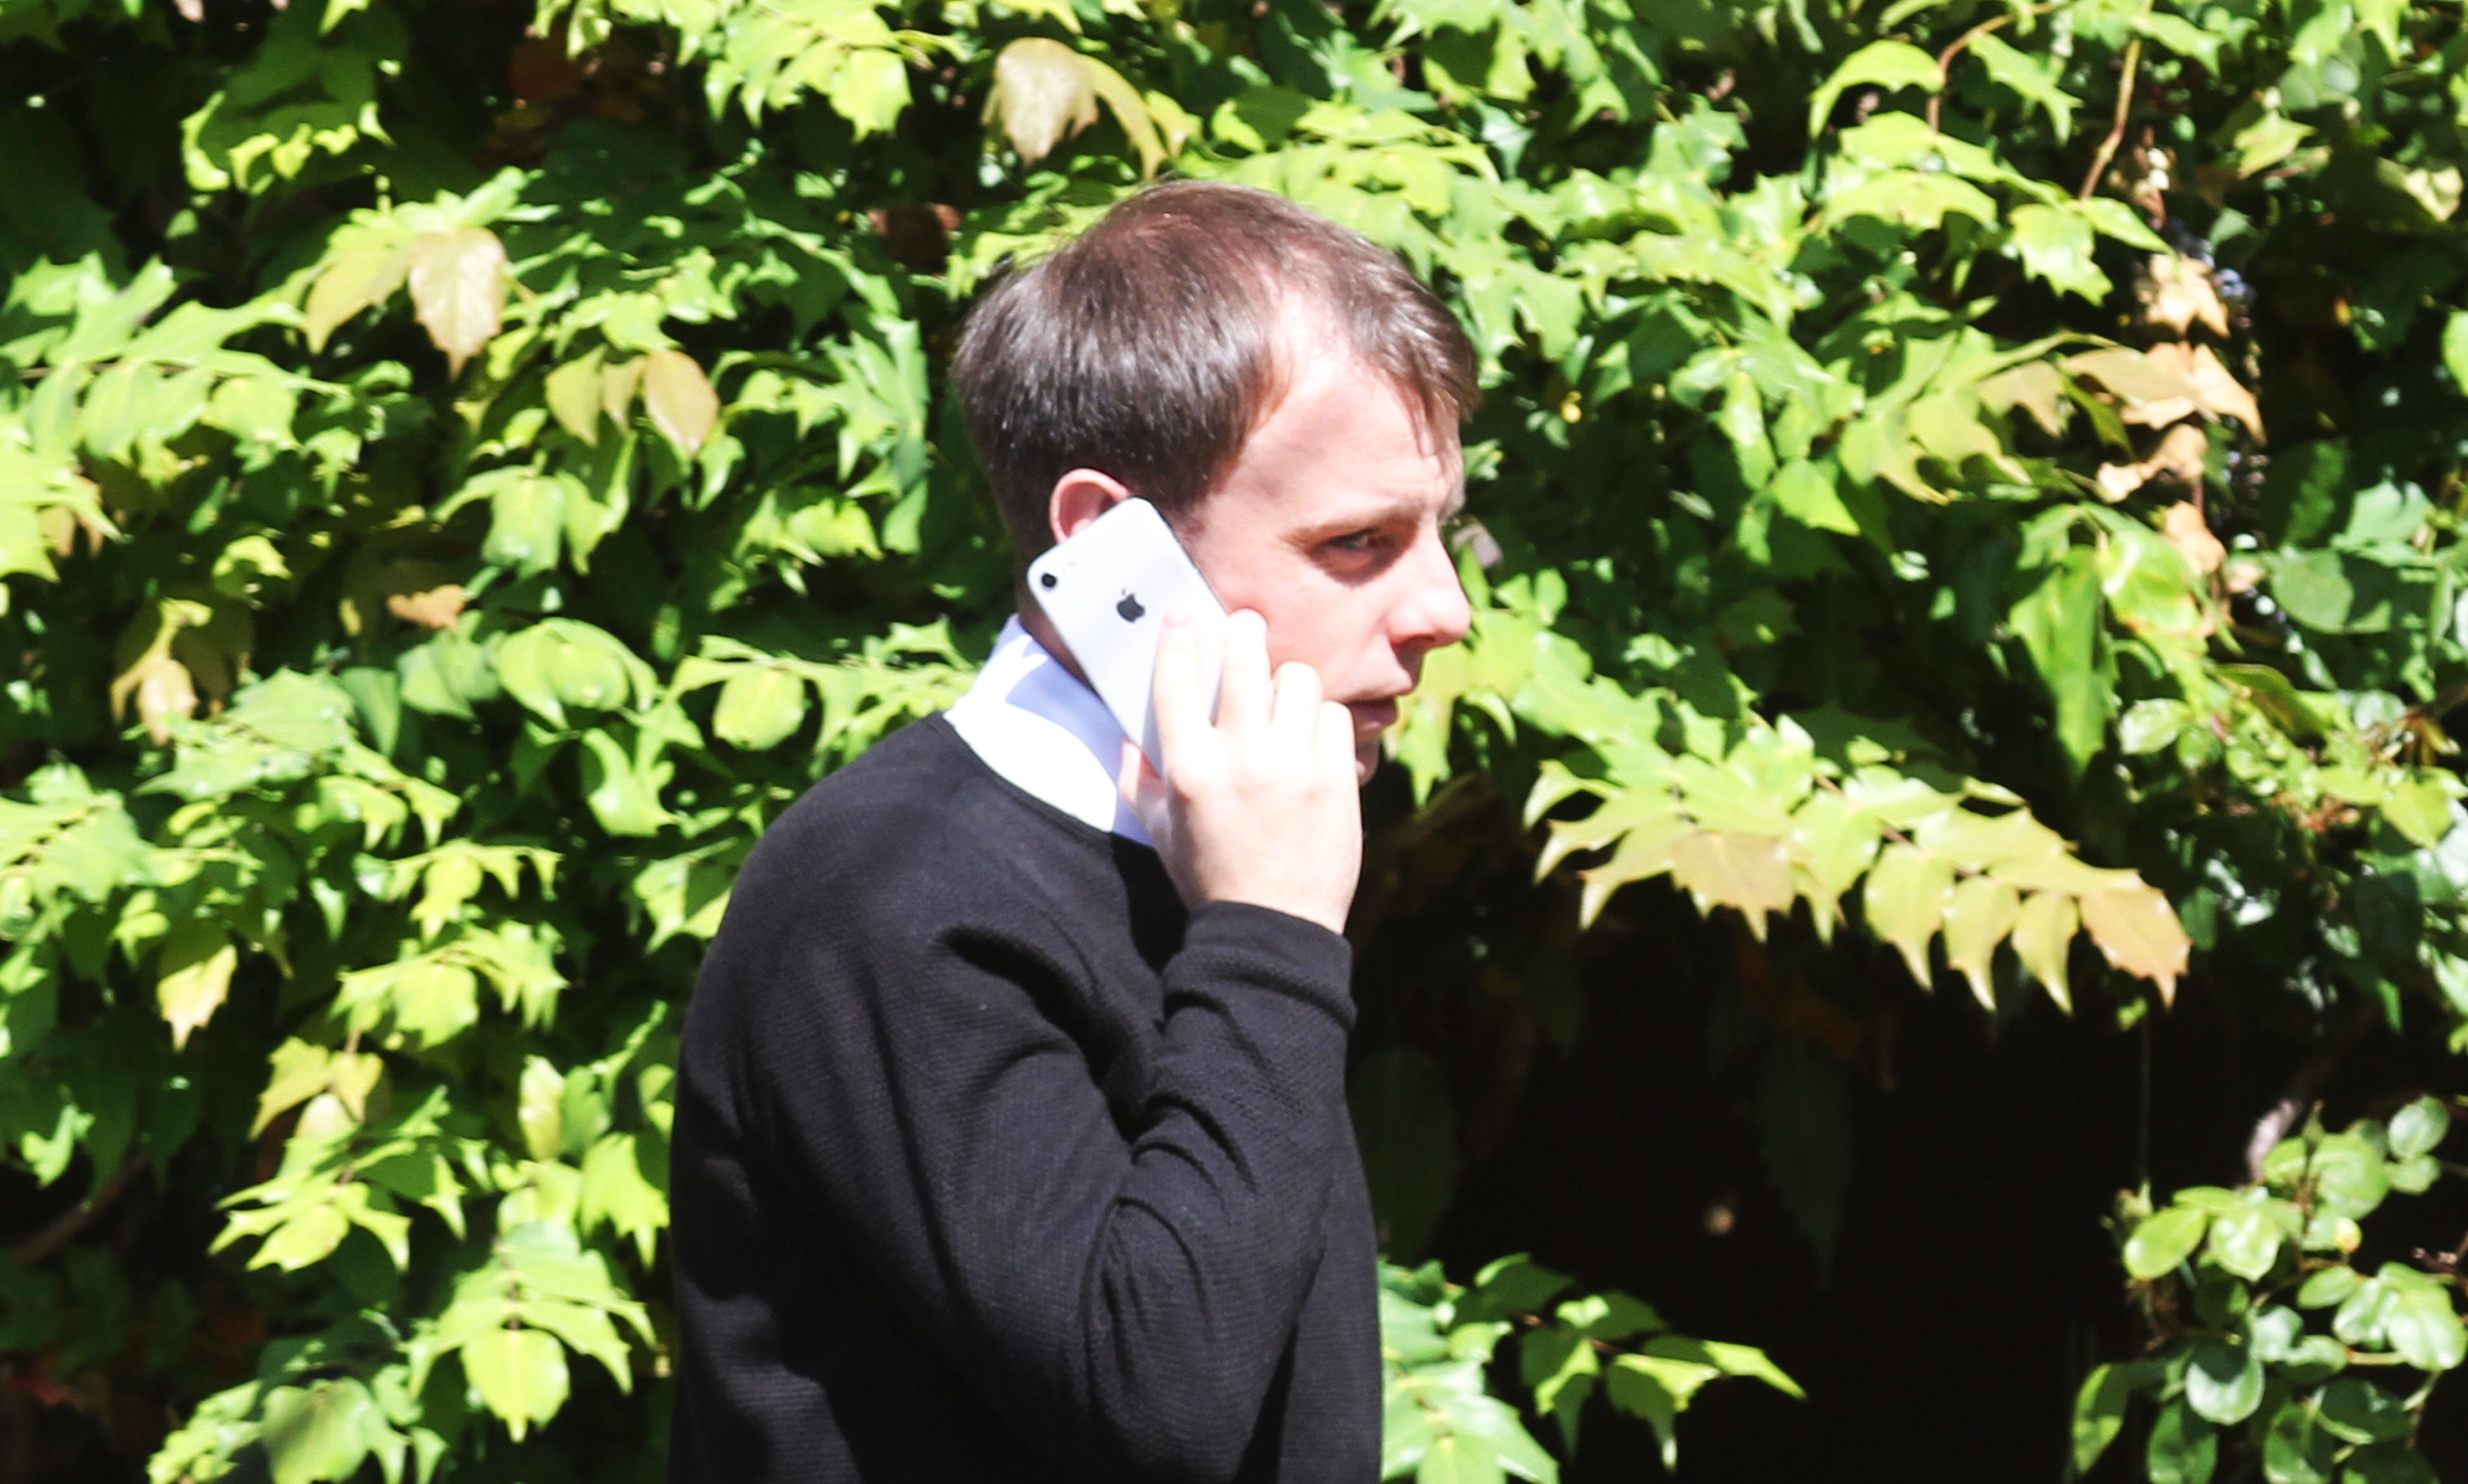 Paul McGowan at Dundee Sheriff Court today